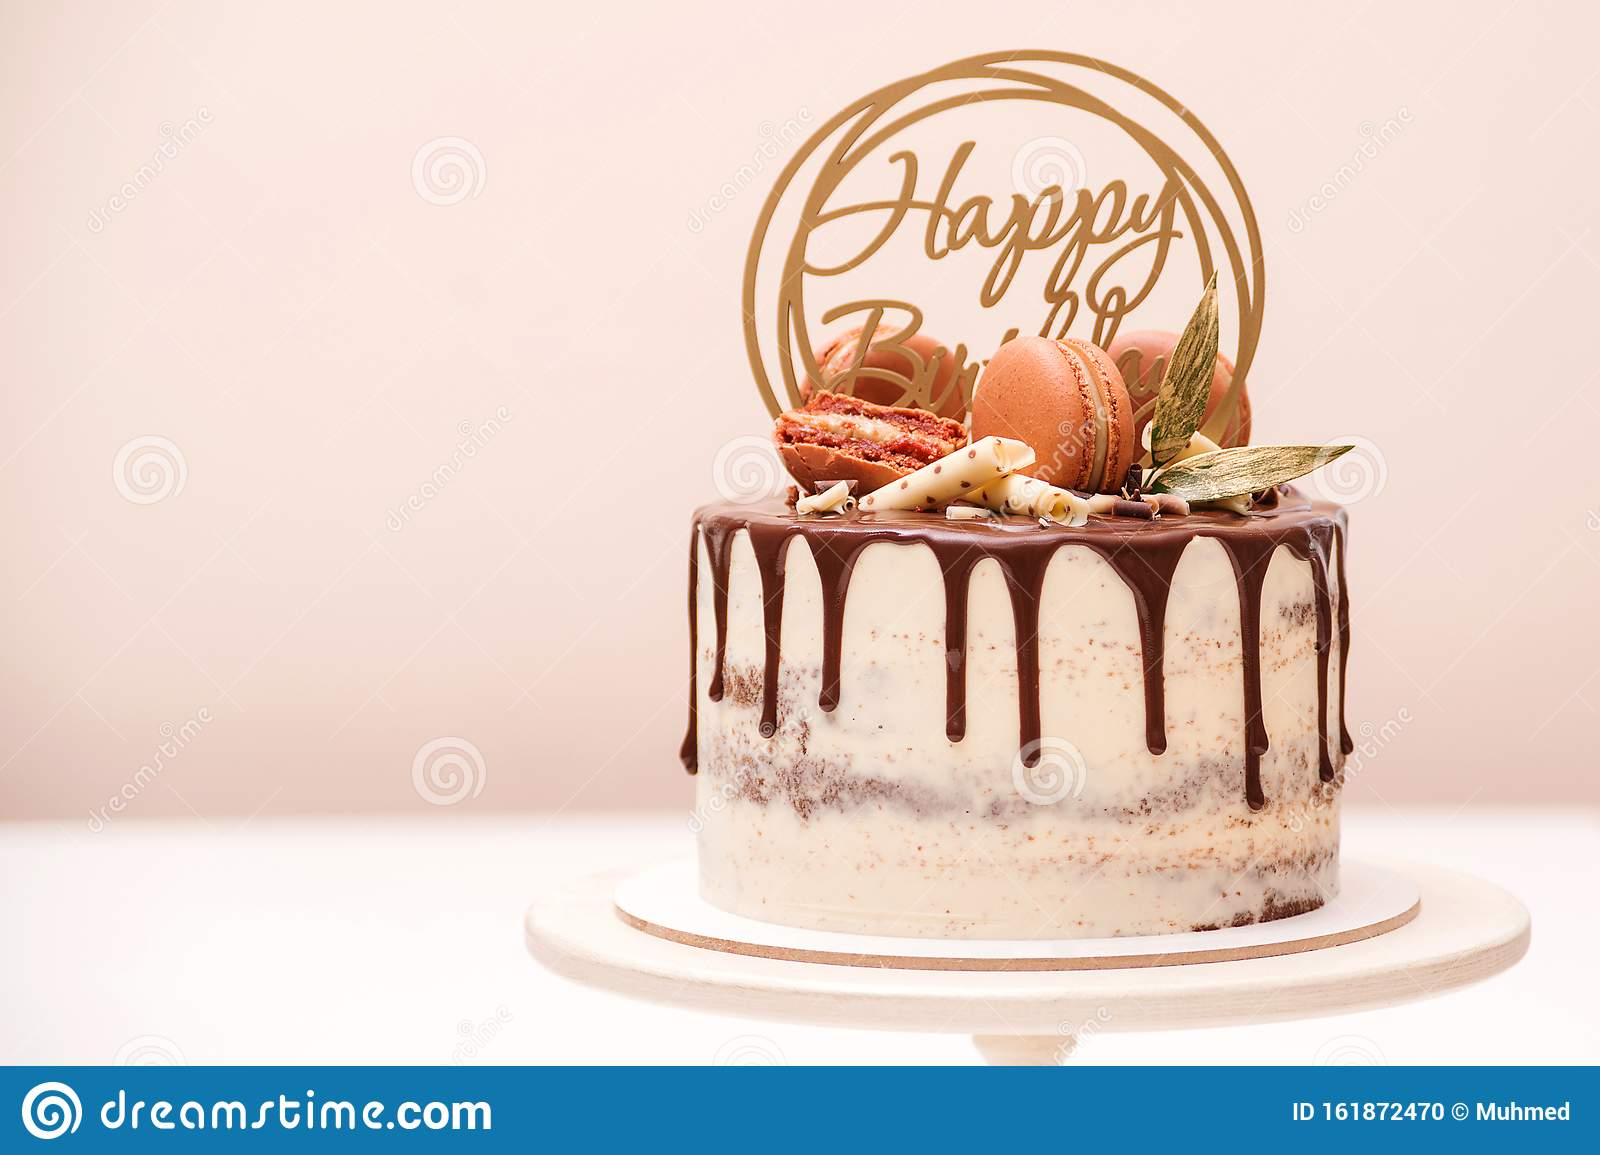 Fantastic Birthday Cake Decorated With Golden Macaroons And Chocolate Pieces Funny Birthday Cards Online Elaedamsfinfo